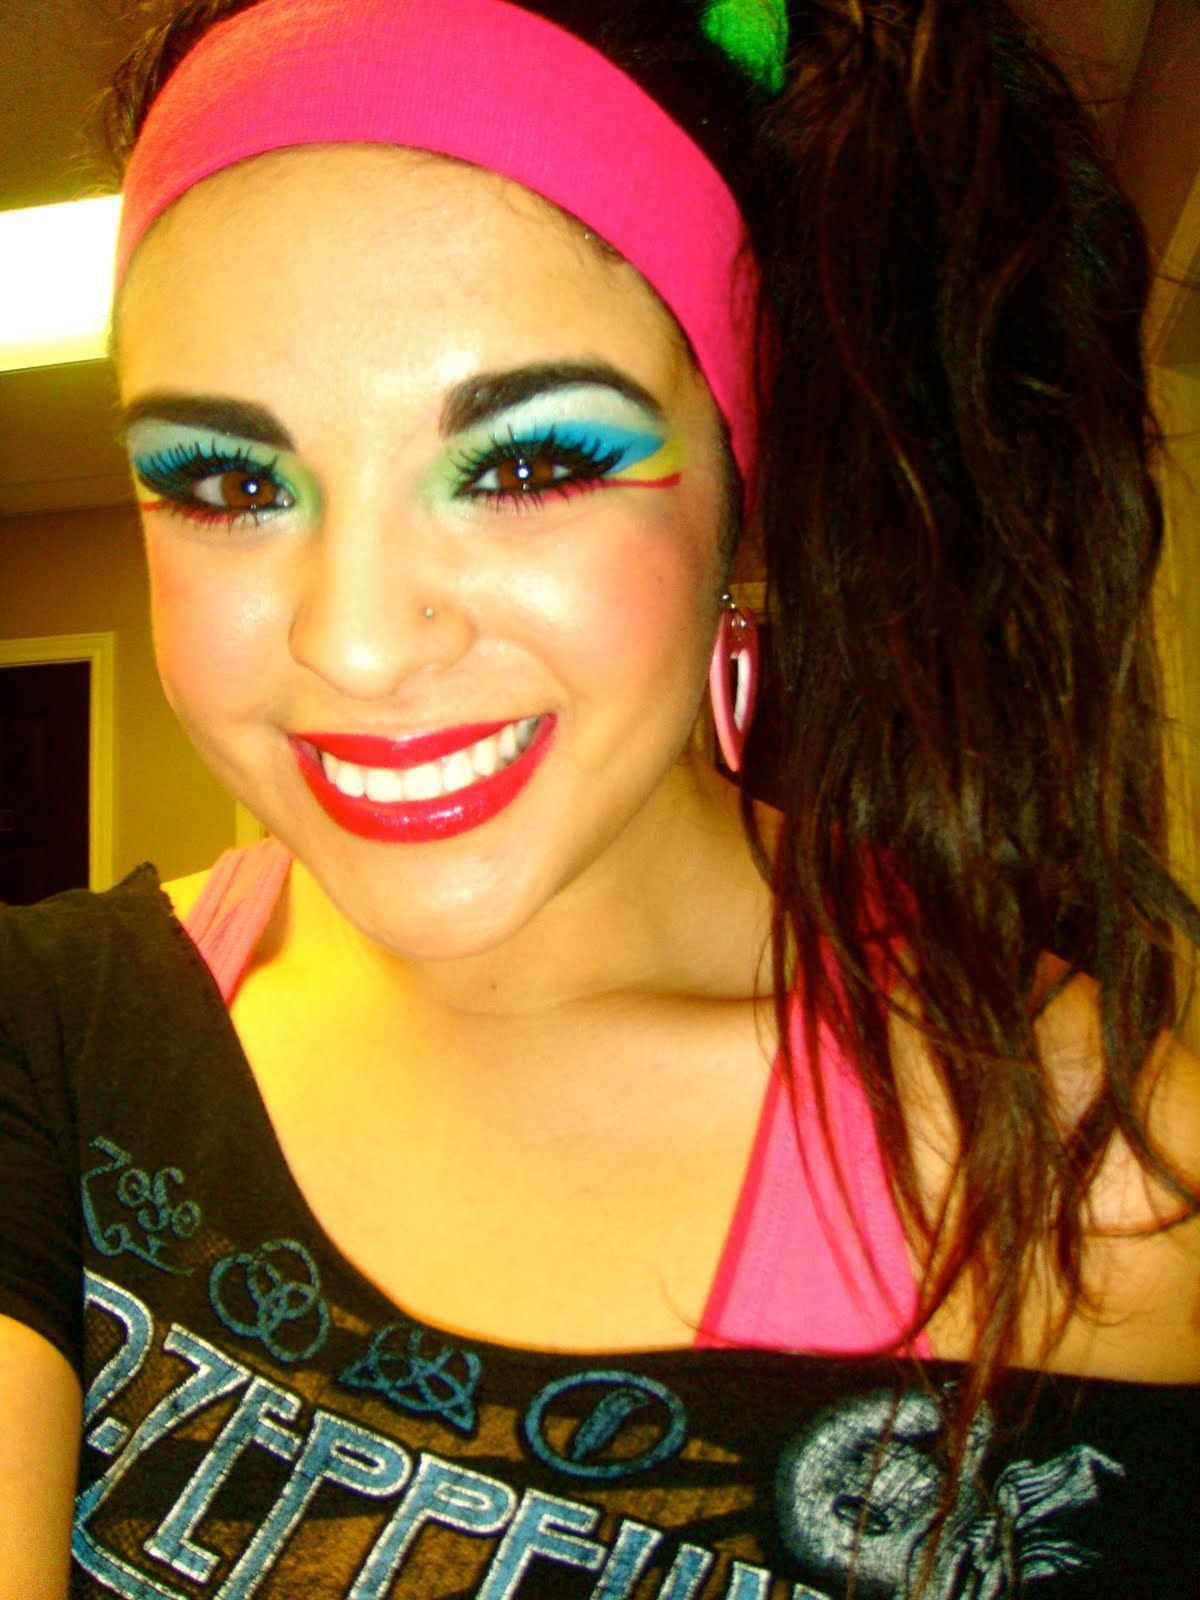 The 80s Photo 80 S Style 80s Workout 80s Workout Costume 80s Outfit